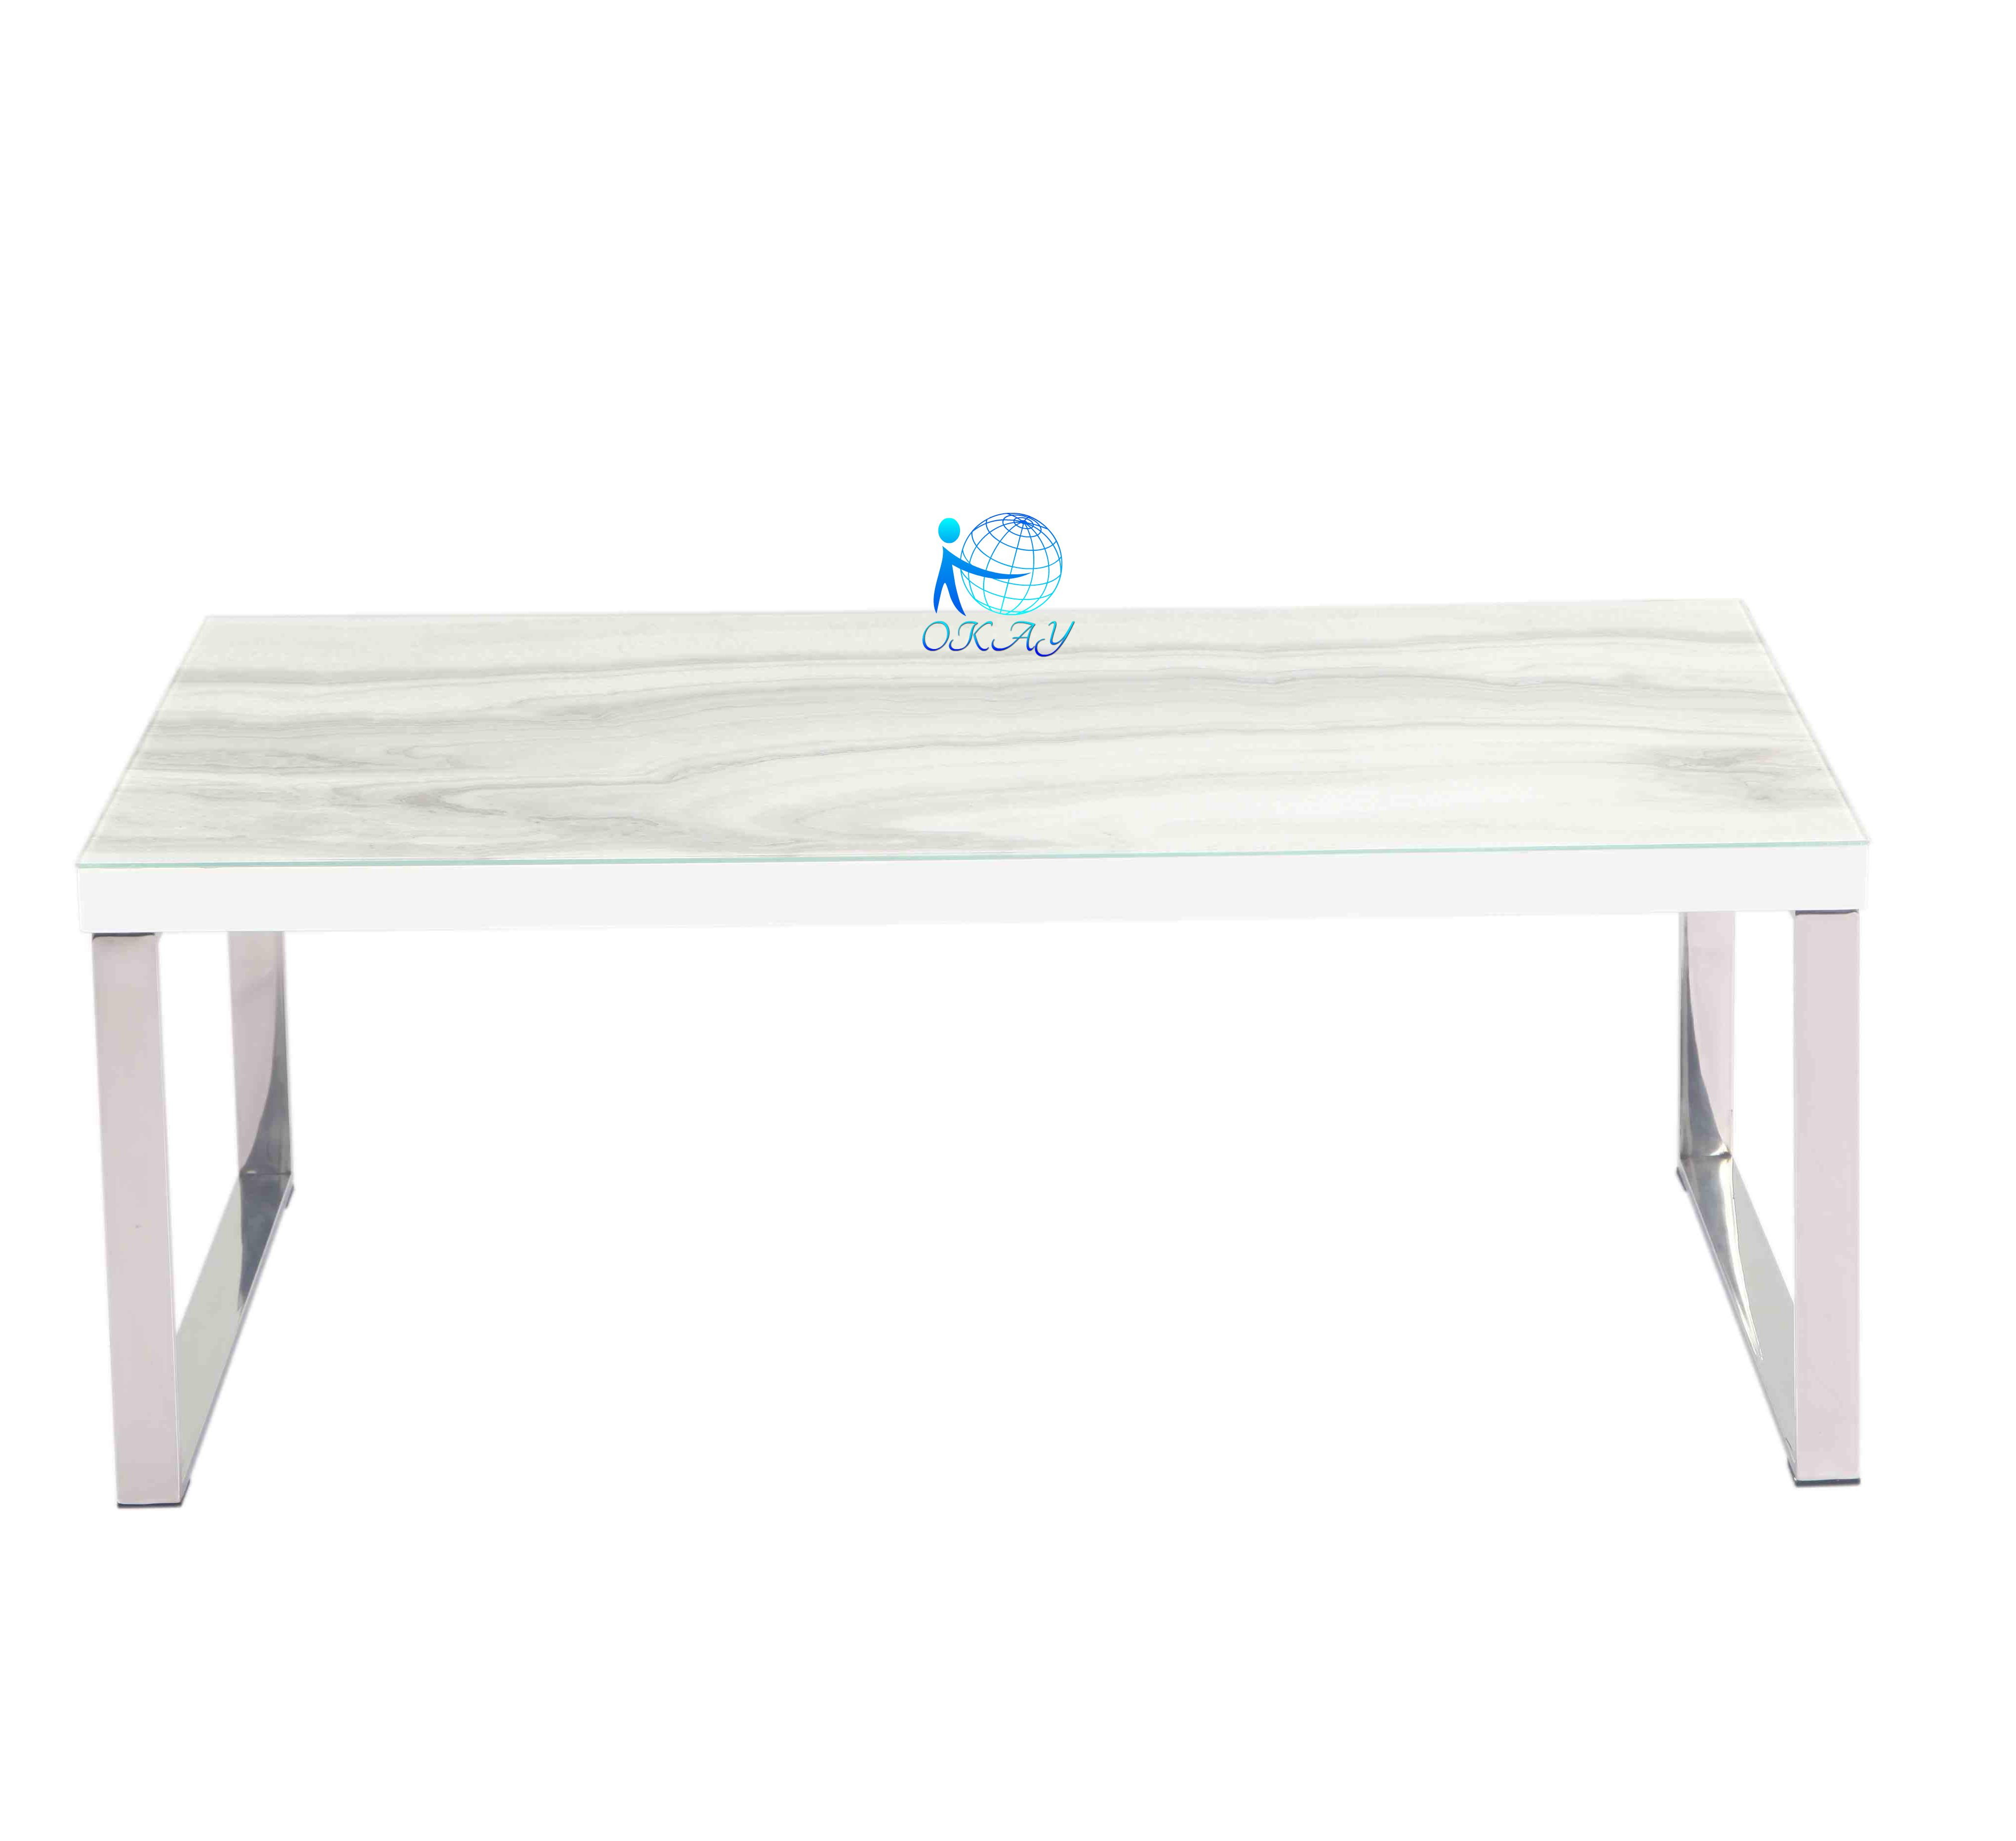 Modern Style Hot Sale Coffee Dining Tables Buy Marble Dining Table Modern Slate Coffee Table Ceramic Coffee Dining Table Product On Alibaba Com